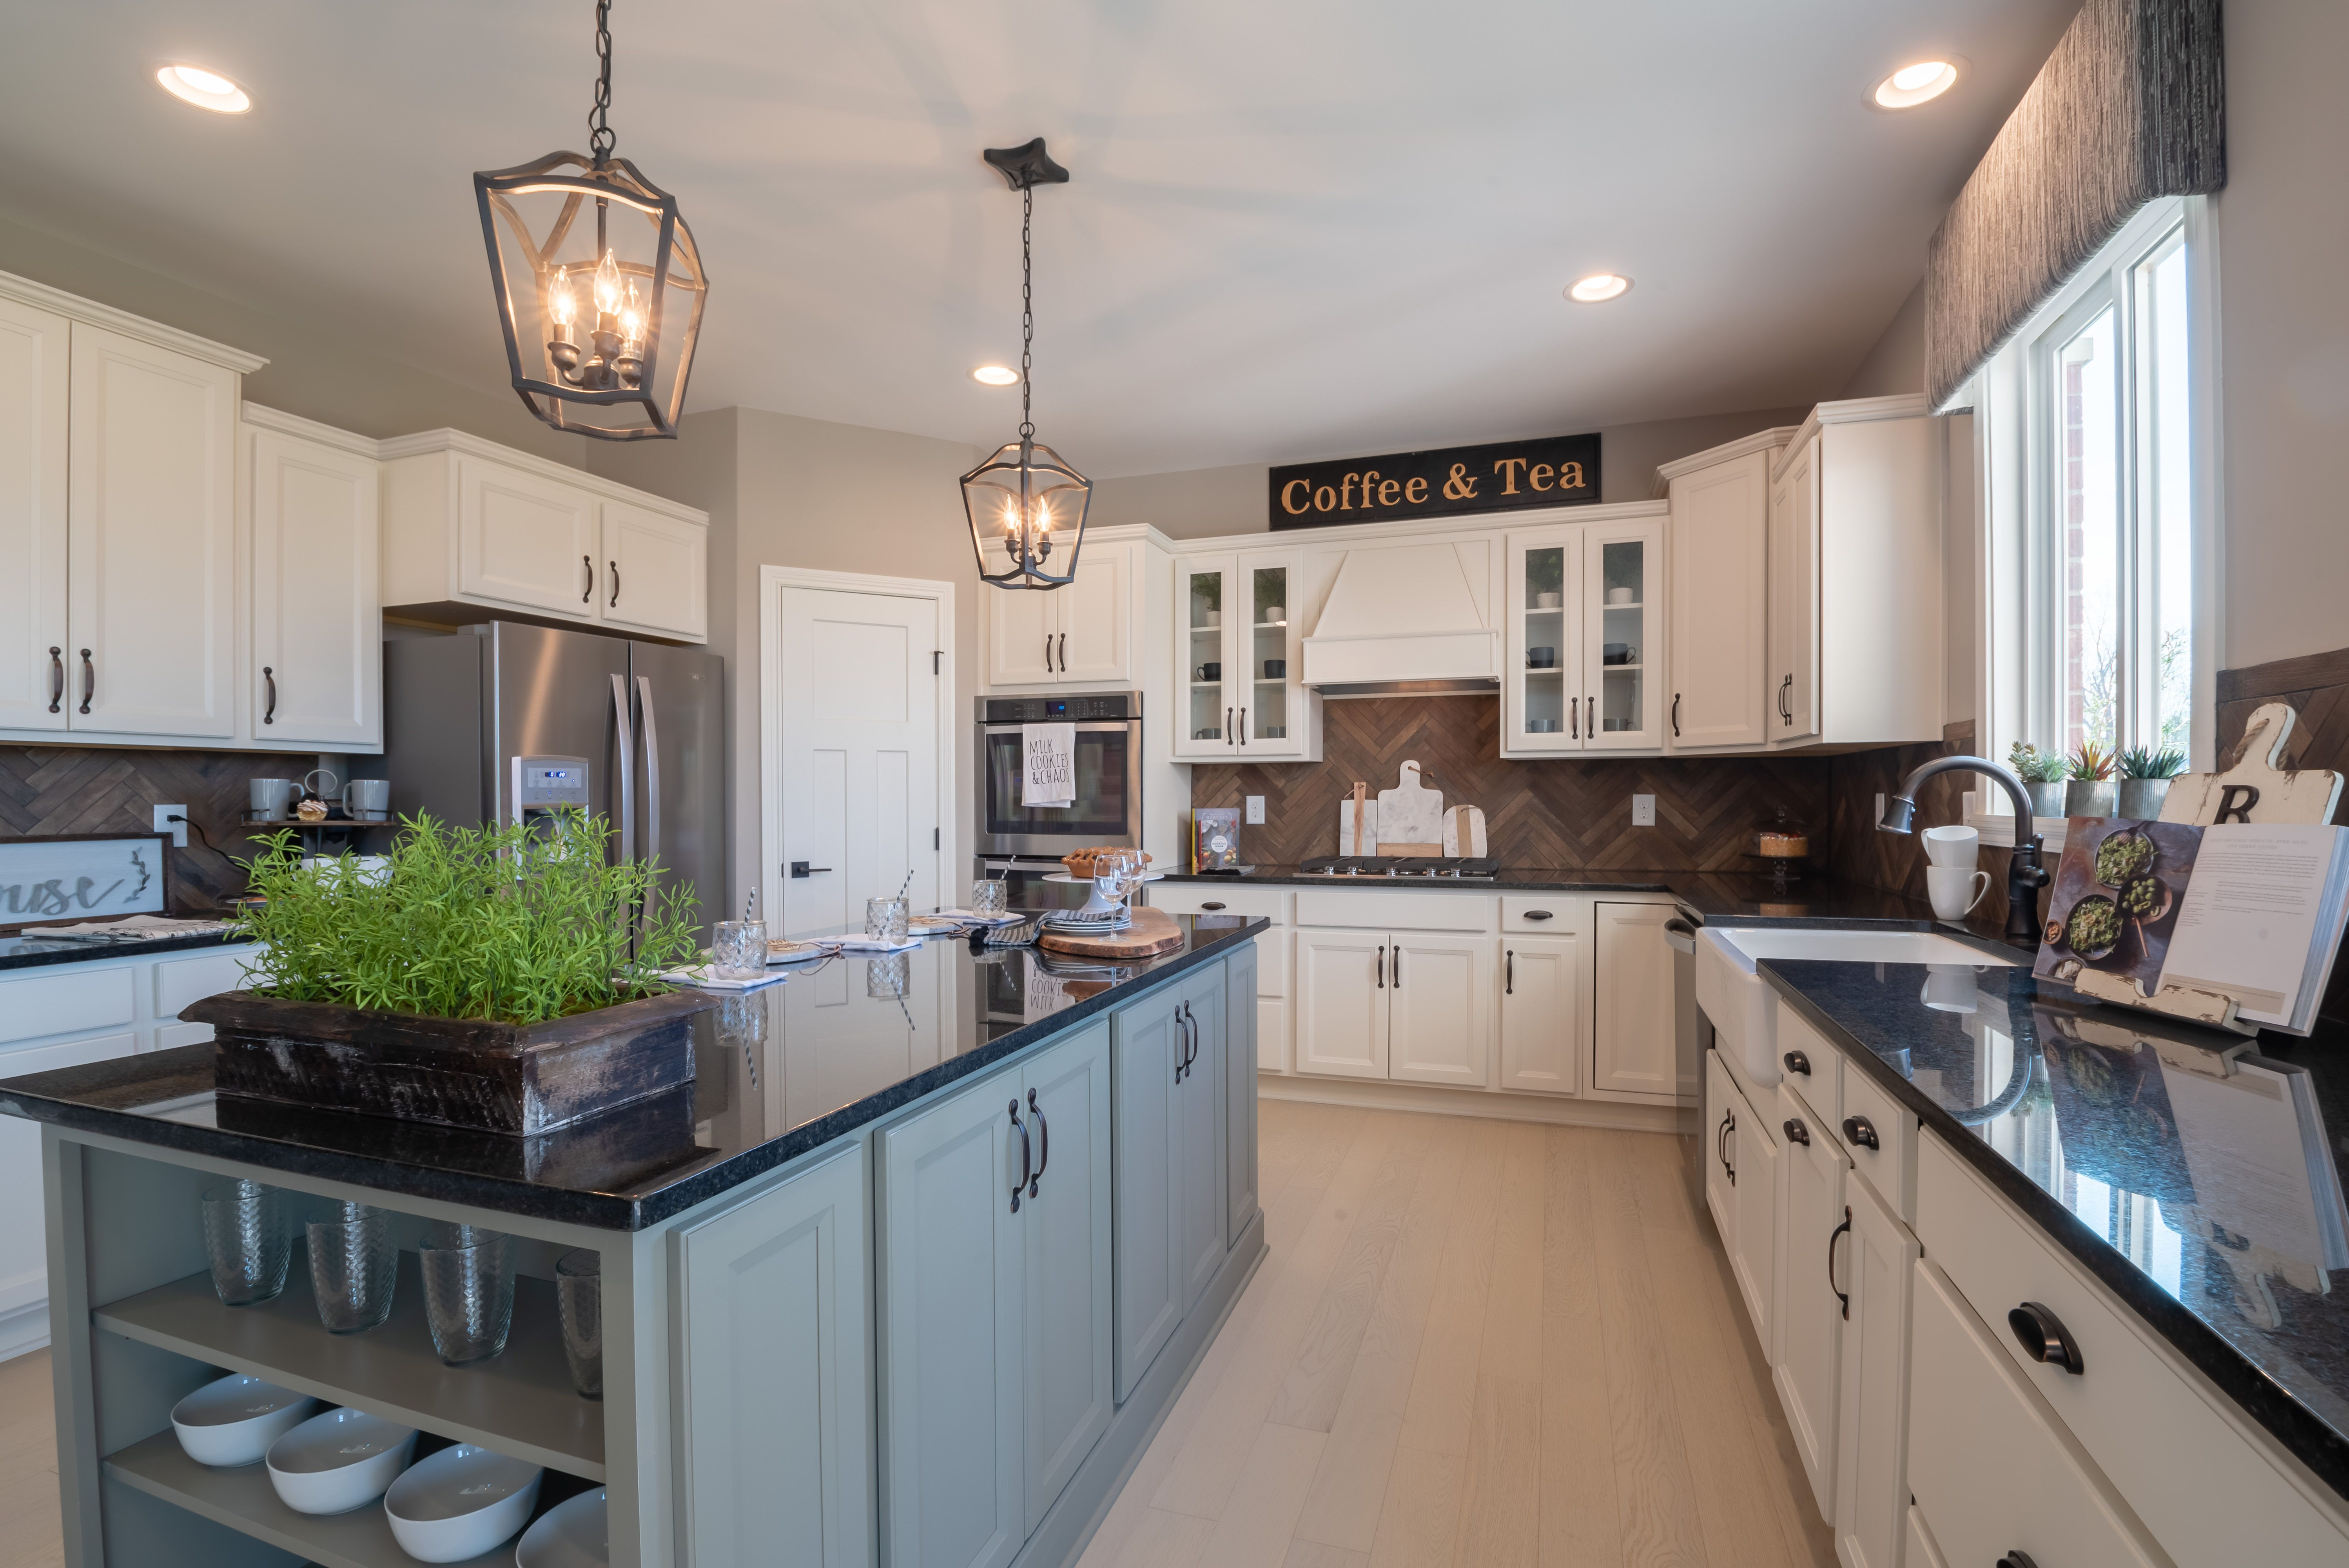 Kitchen featured in the Andover By Fischer Homes  in Cincinnati, KY